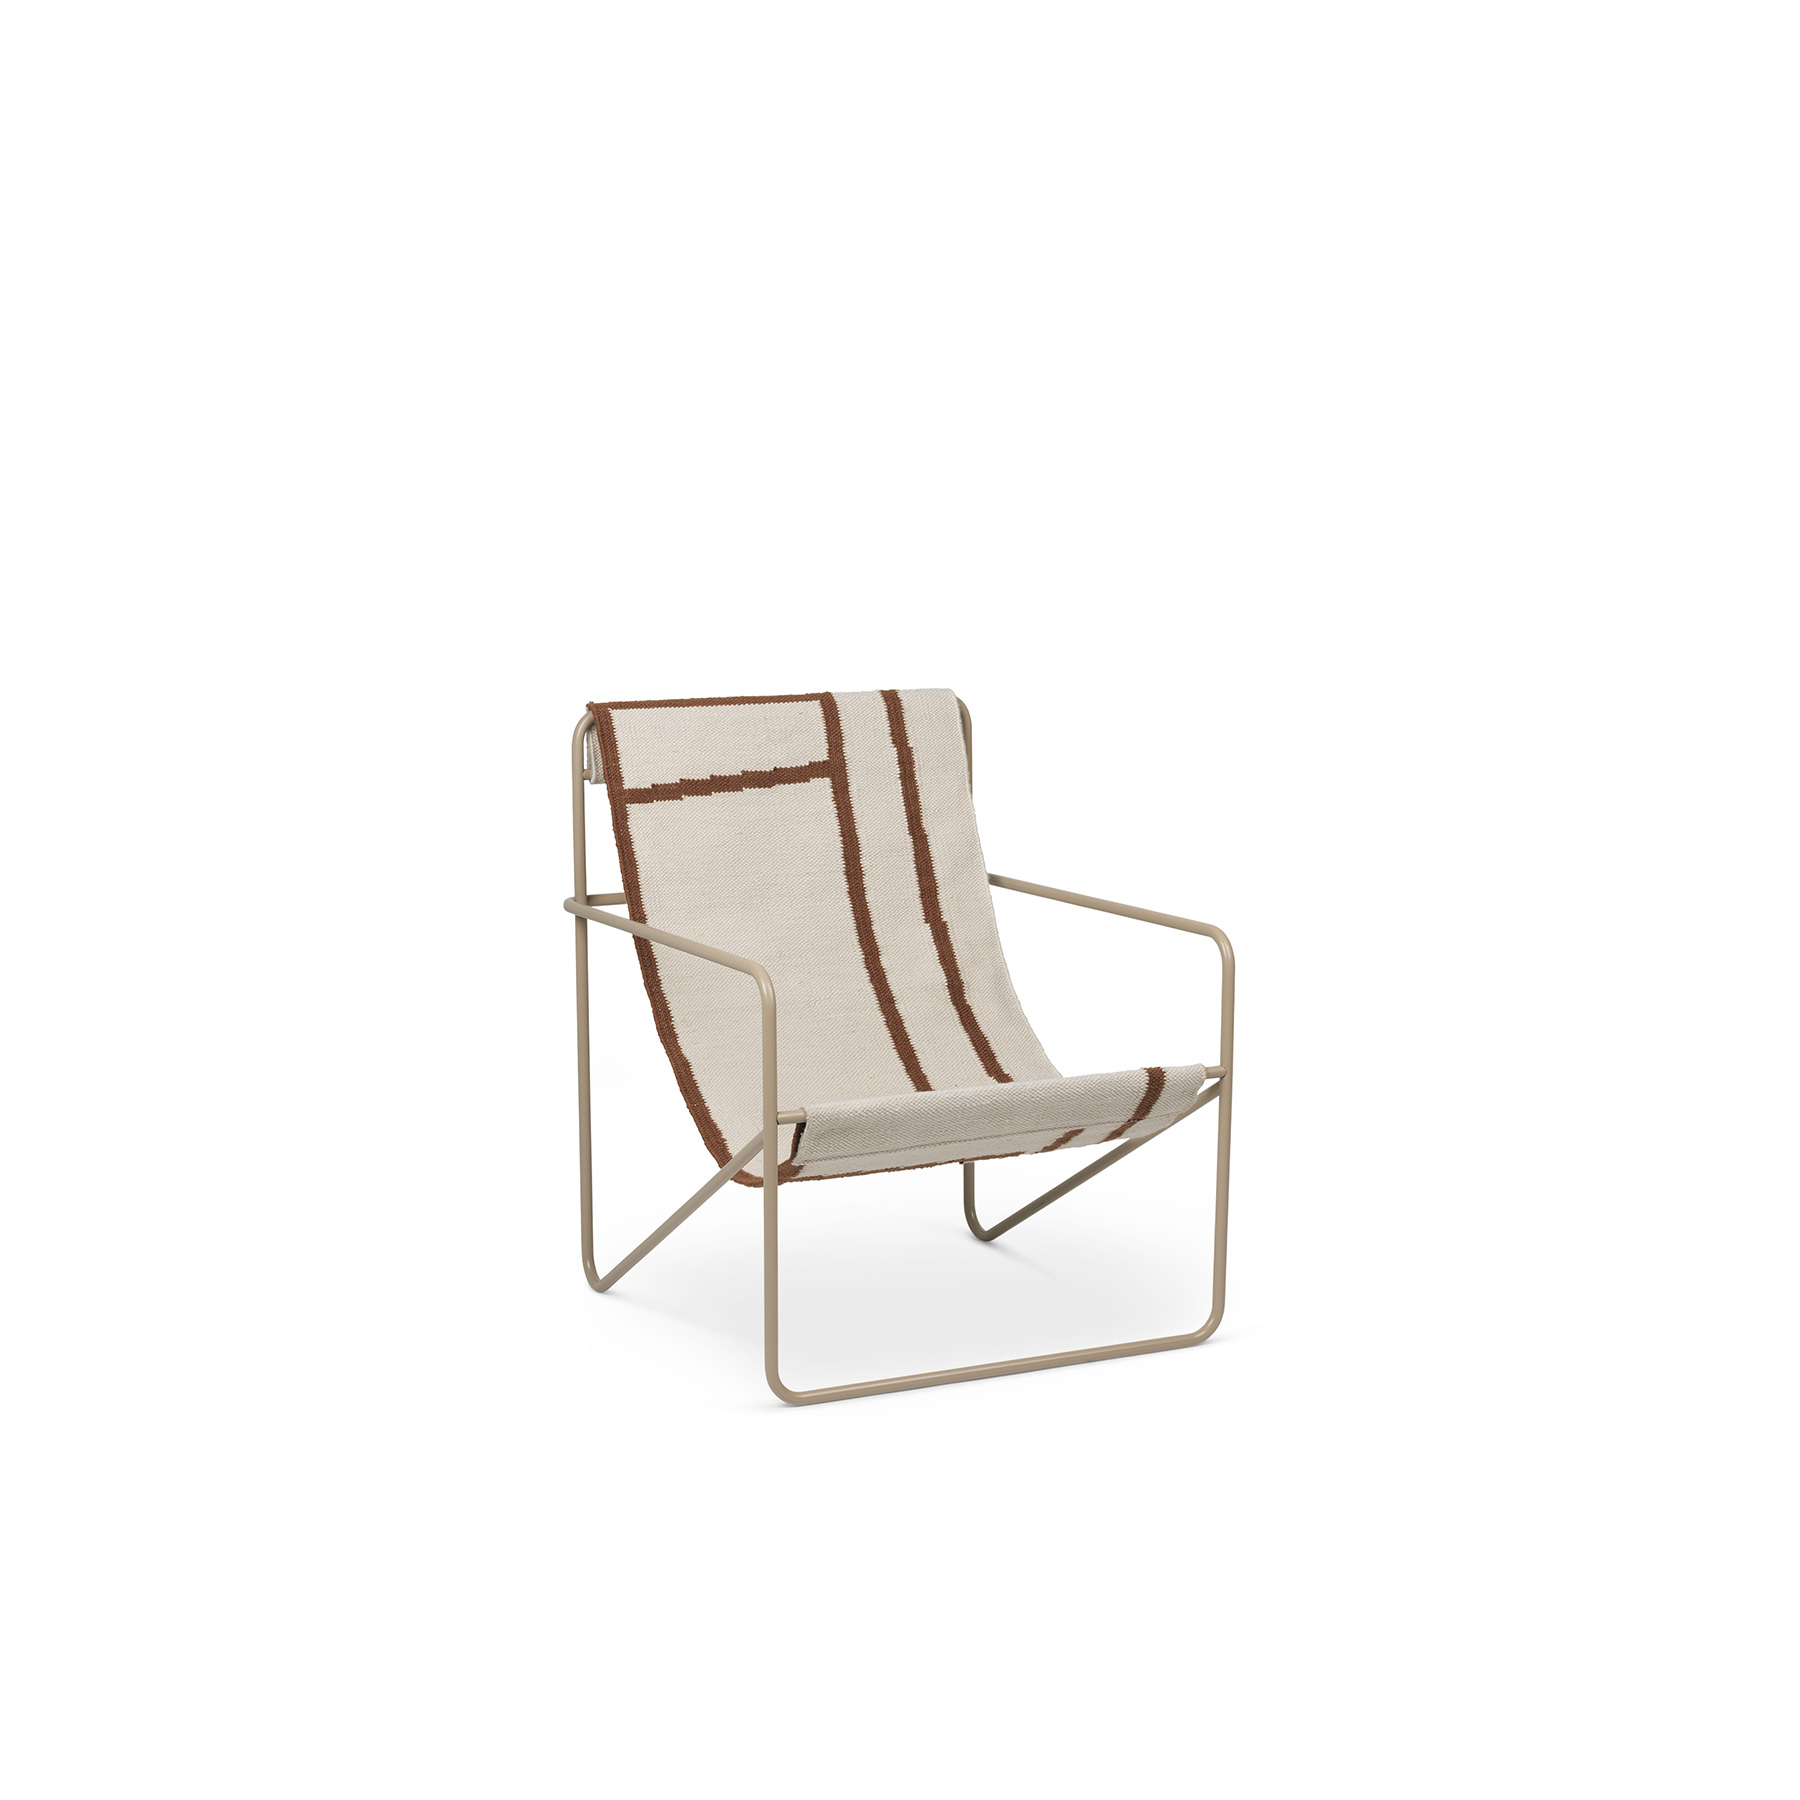 Desert Lounge Chair Shapes - <p>A Modernist chair with a graceful profile, Desert Chair is crafted from a tubular powder-coated steel frame in colours Black or Cashmere, holding an interchangeable woven textile seat made from recycled plastic bottles, available in four designs: Soil, Stripes, Shapes or Solid Cashmere. Suitable for use both indoors and out, the lounge design invites relaxation. Just sit back and enjoy.</p>  | Matter of Stuff